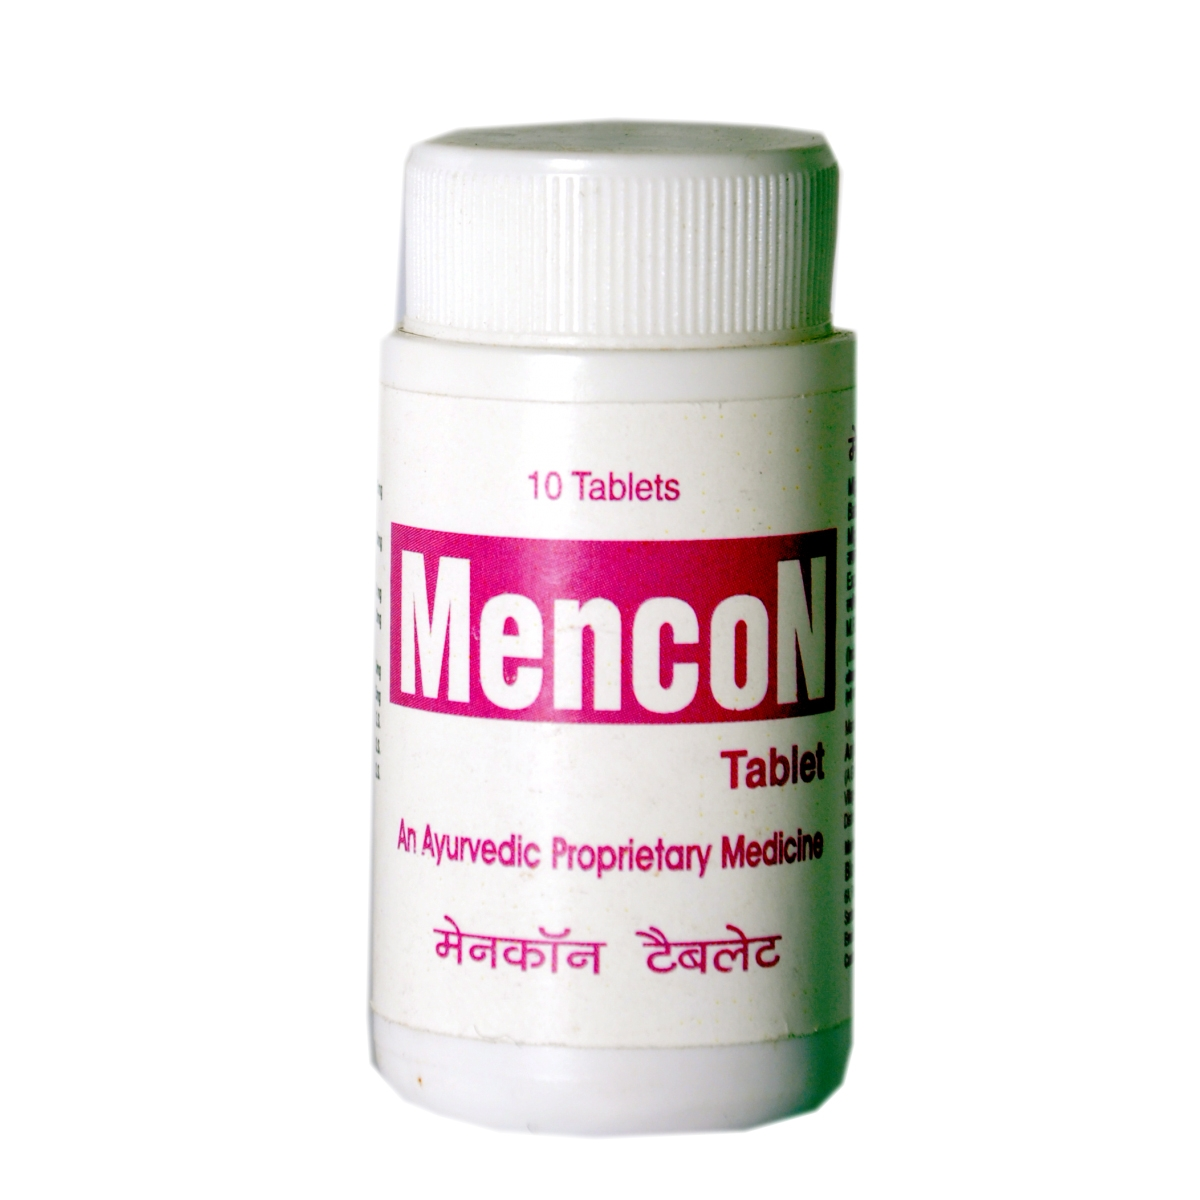 Mencon Tablet In Jamnagar